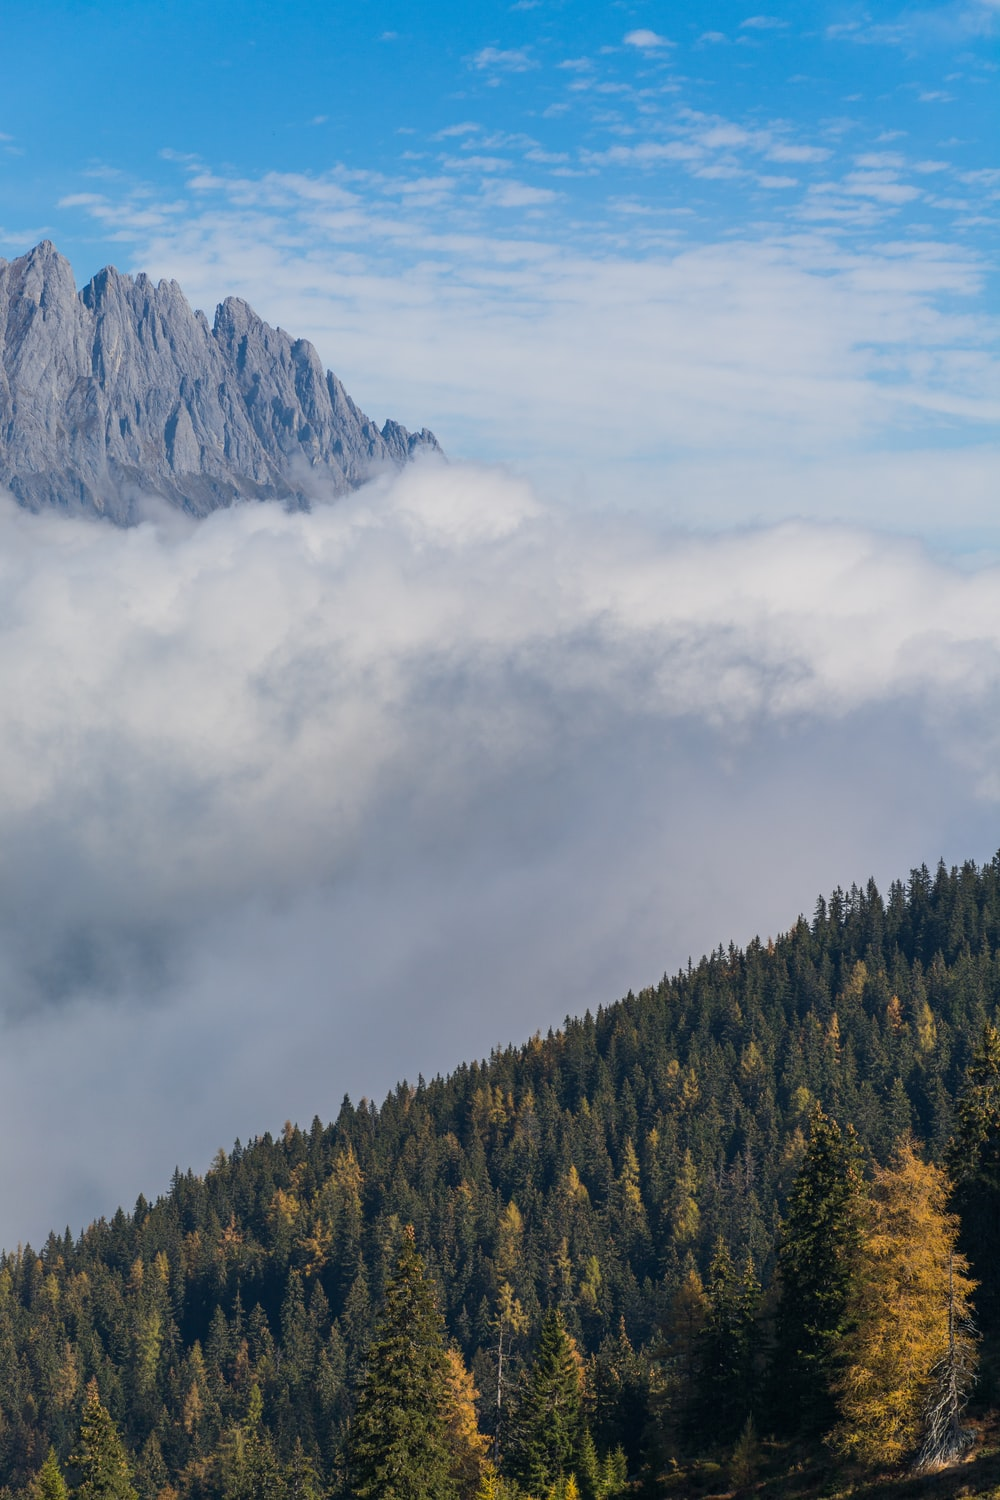 trees and mountain covered by cloud during daytime